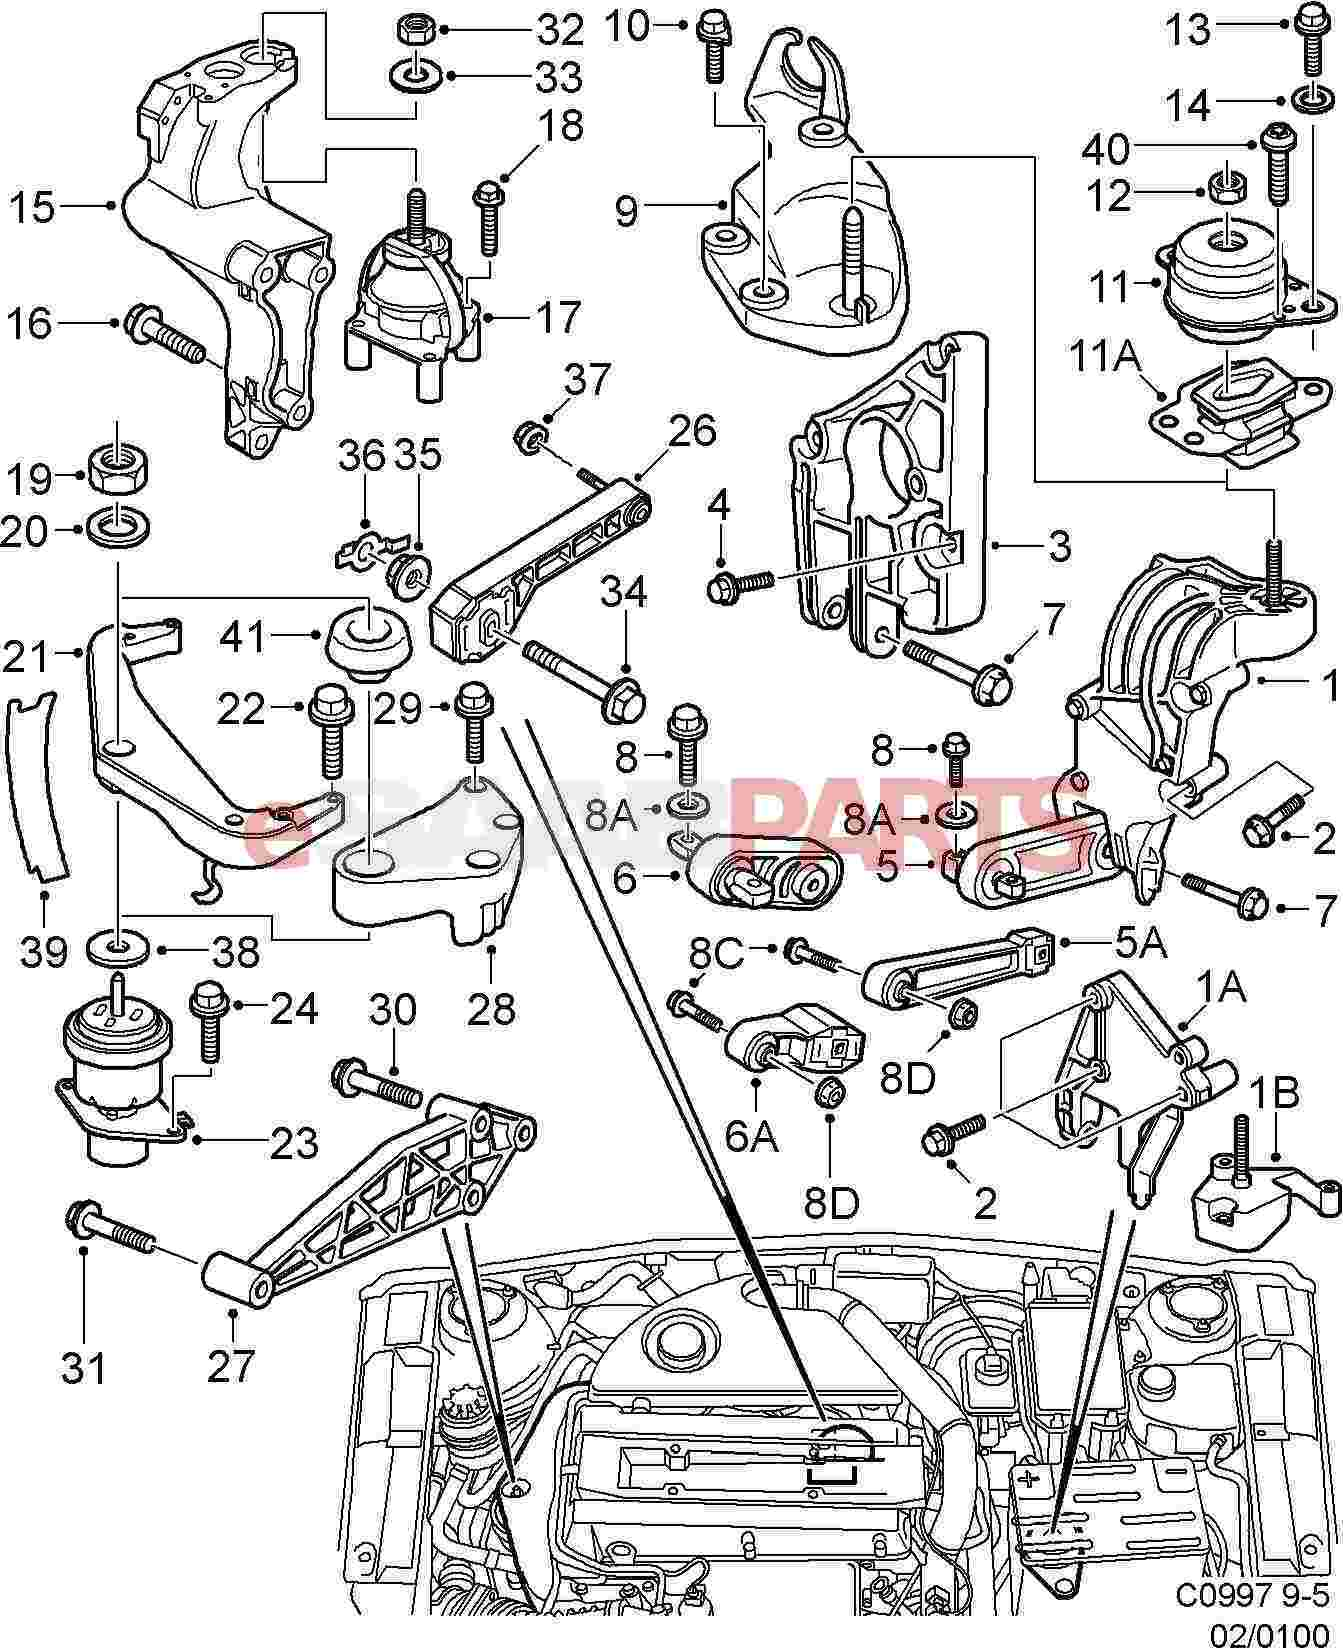 2004 Saab 9 5 Engine Diagram - Data Wiring Diagrams •